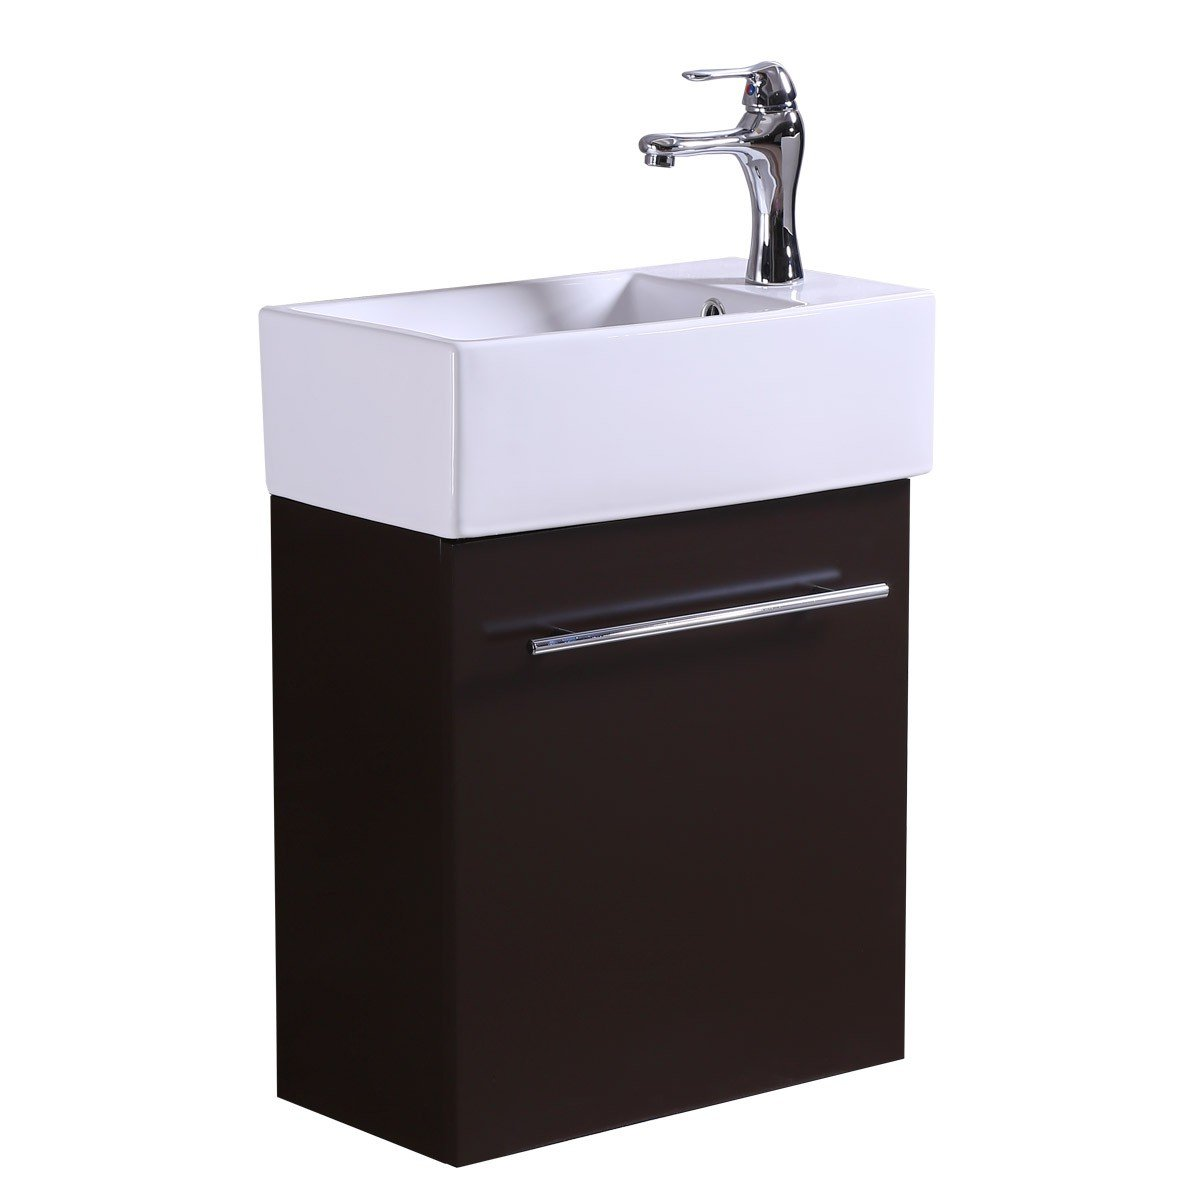 Small Wall Mount Bathroom Cabinet Vanity Sink White China Sink-Vessel With Overflow On Brown Cabinet And Towel Bar, Single Hole Faucet And Drain Included Space Saving Compact Rectangle Design by Renovator's Supply